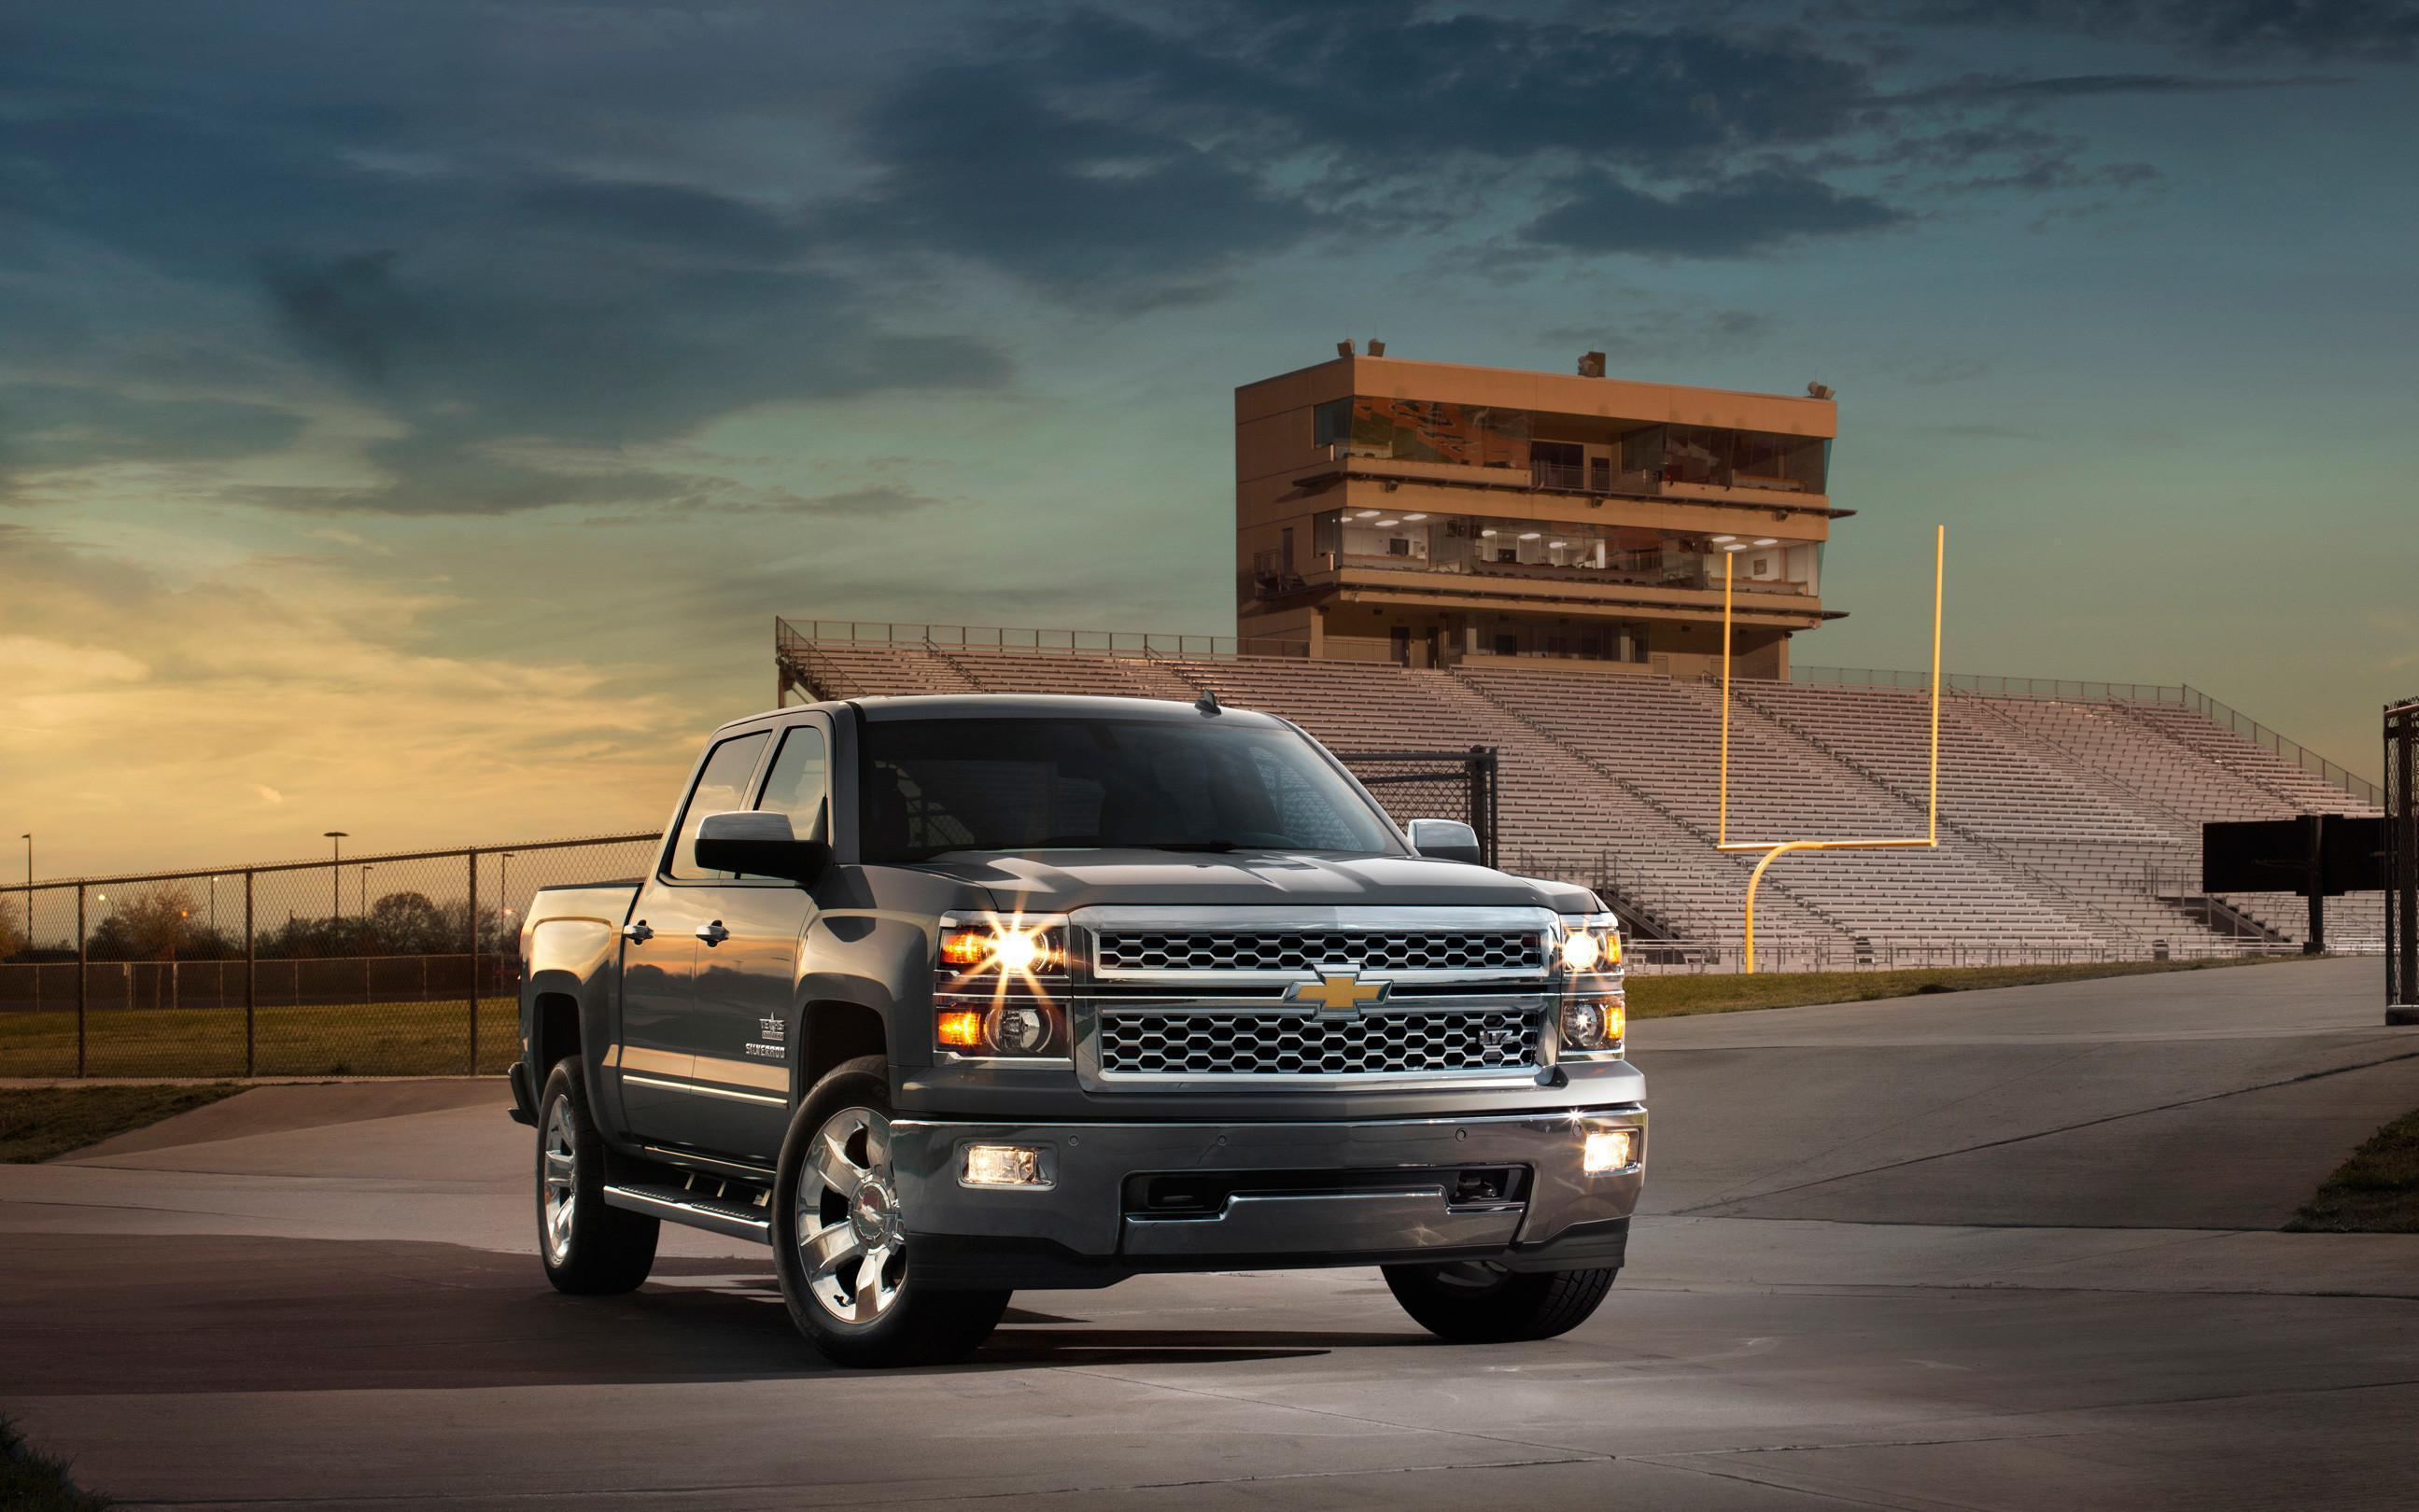 Chevy Truck Wallpaper 58 Download Hd Wallpapers Chevrolet Texas Edition Chevy Trucks 1839478 Hd Wallpaper Backgrounds Download